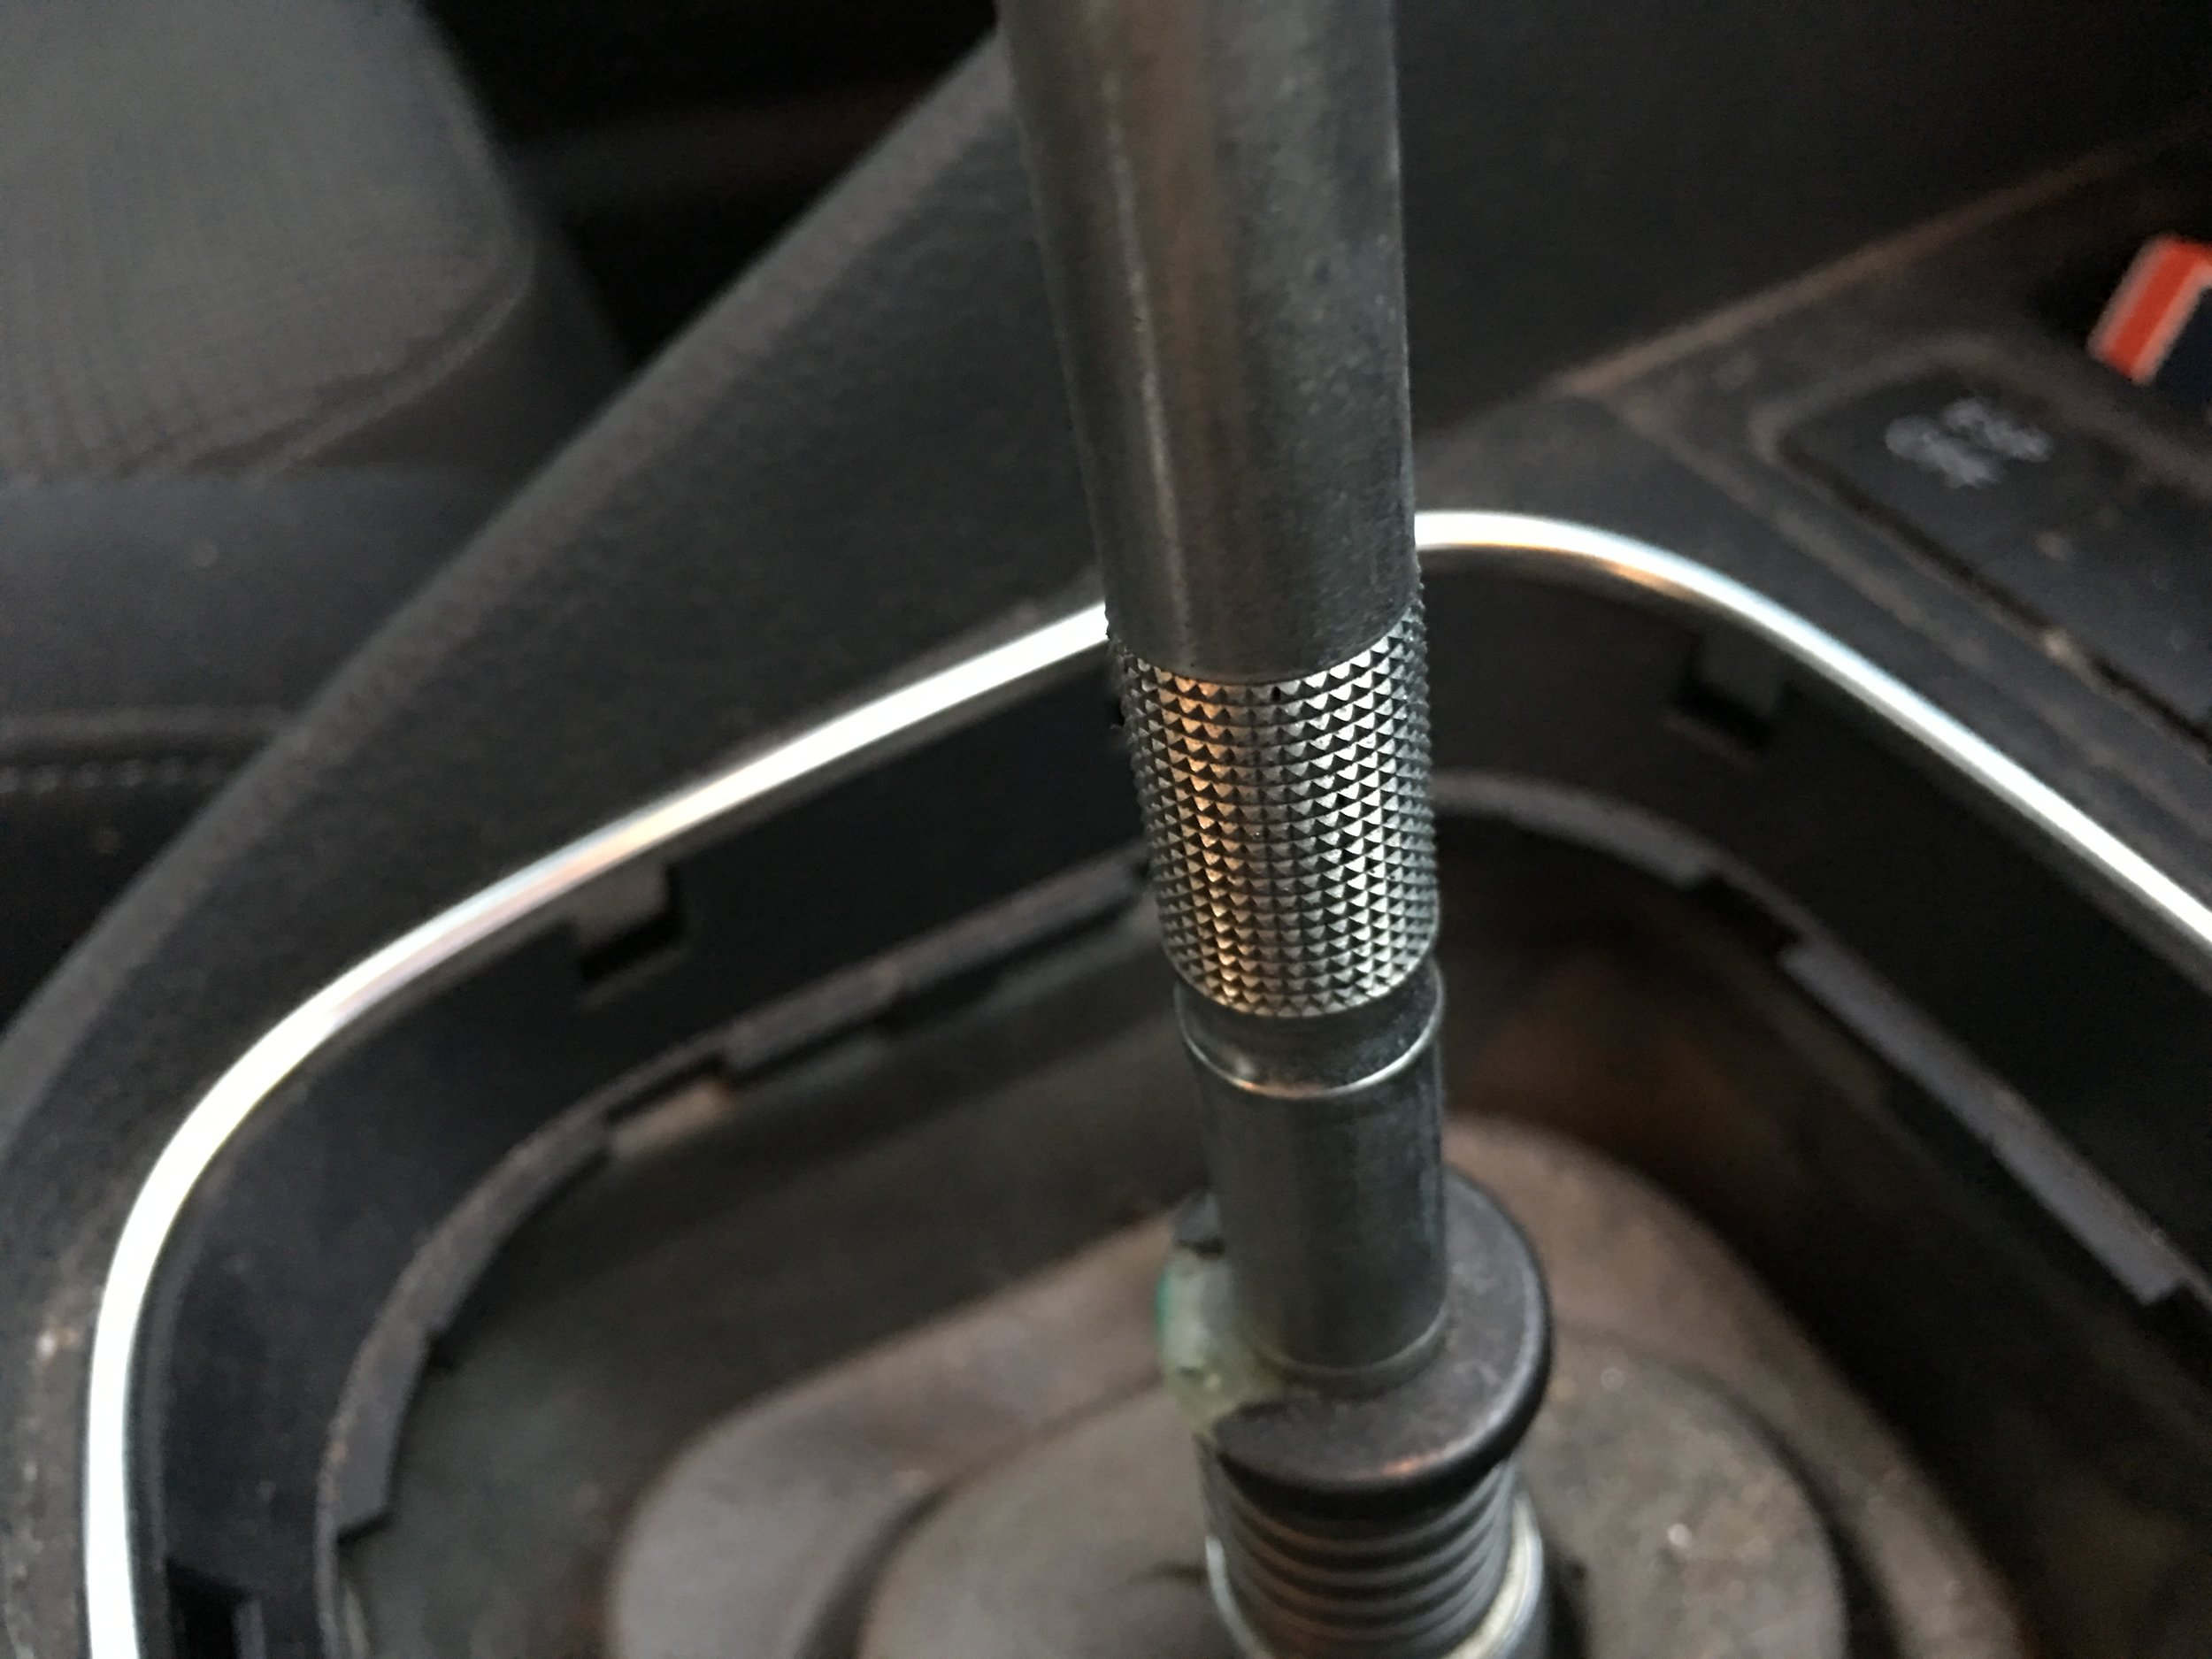 Knurled portion of my gear shifter.